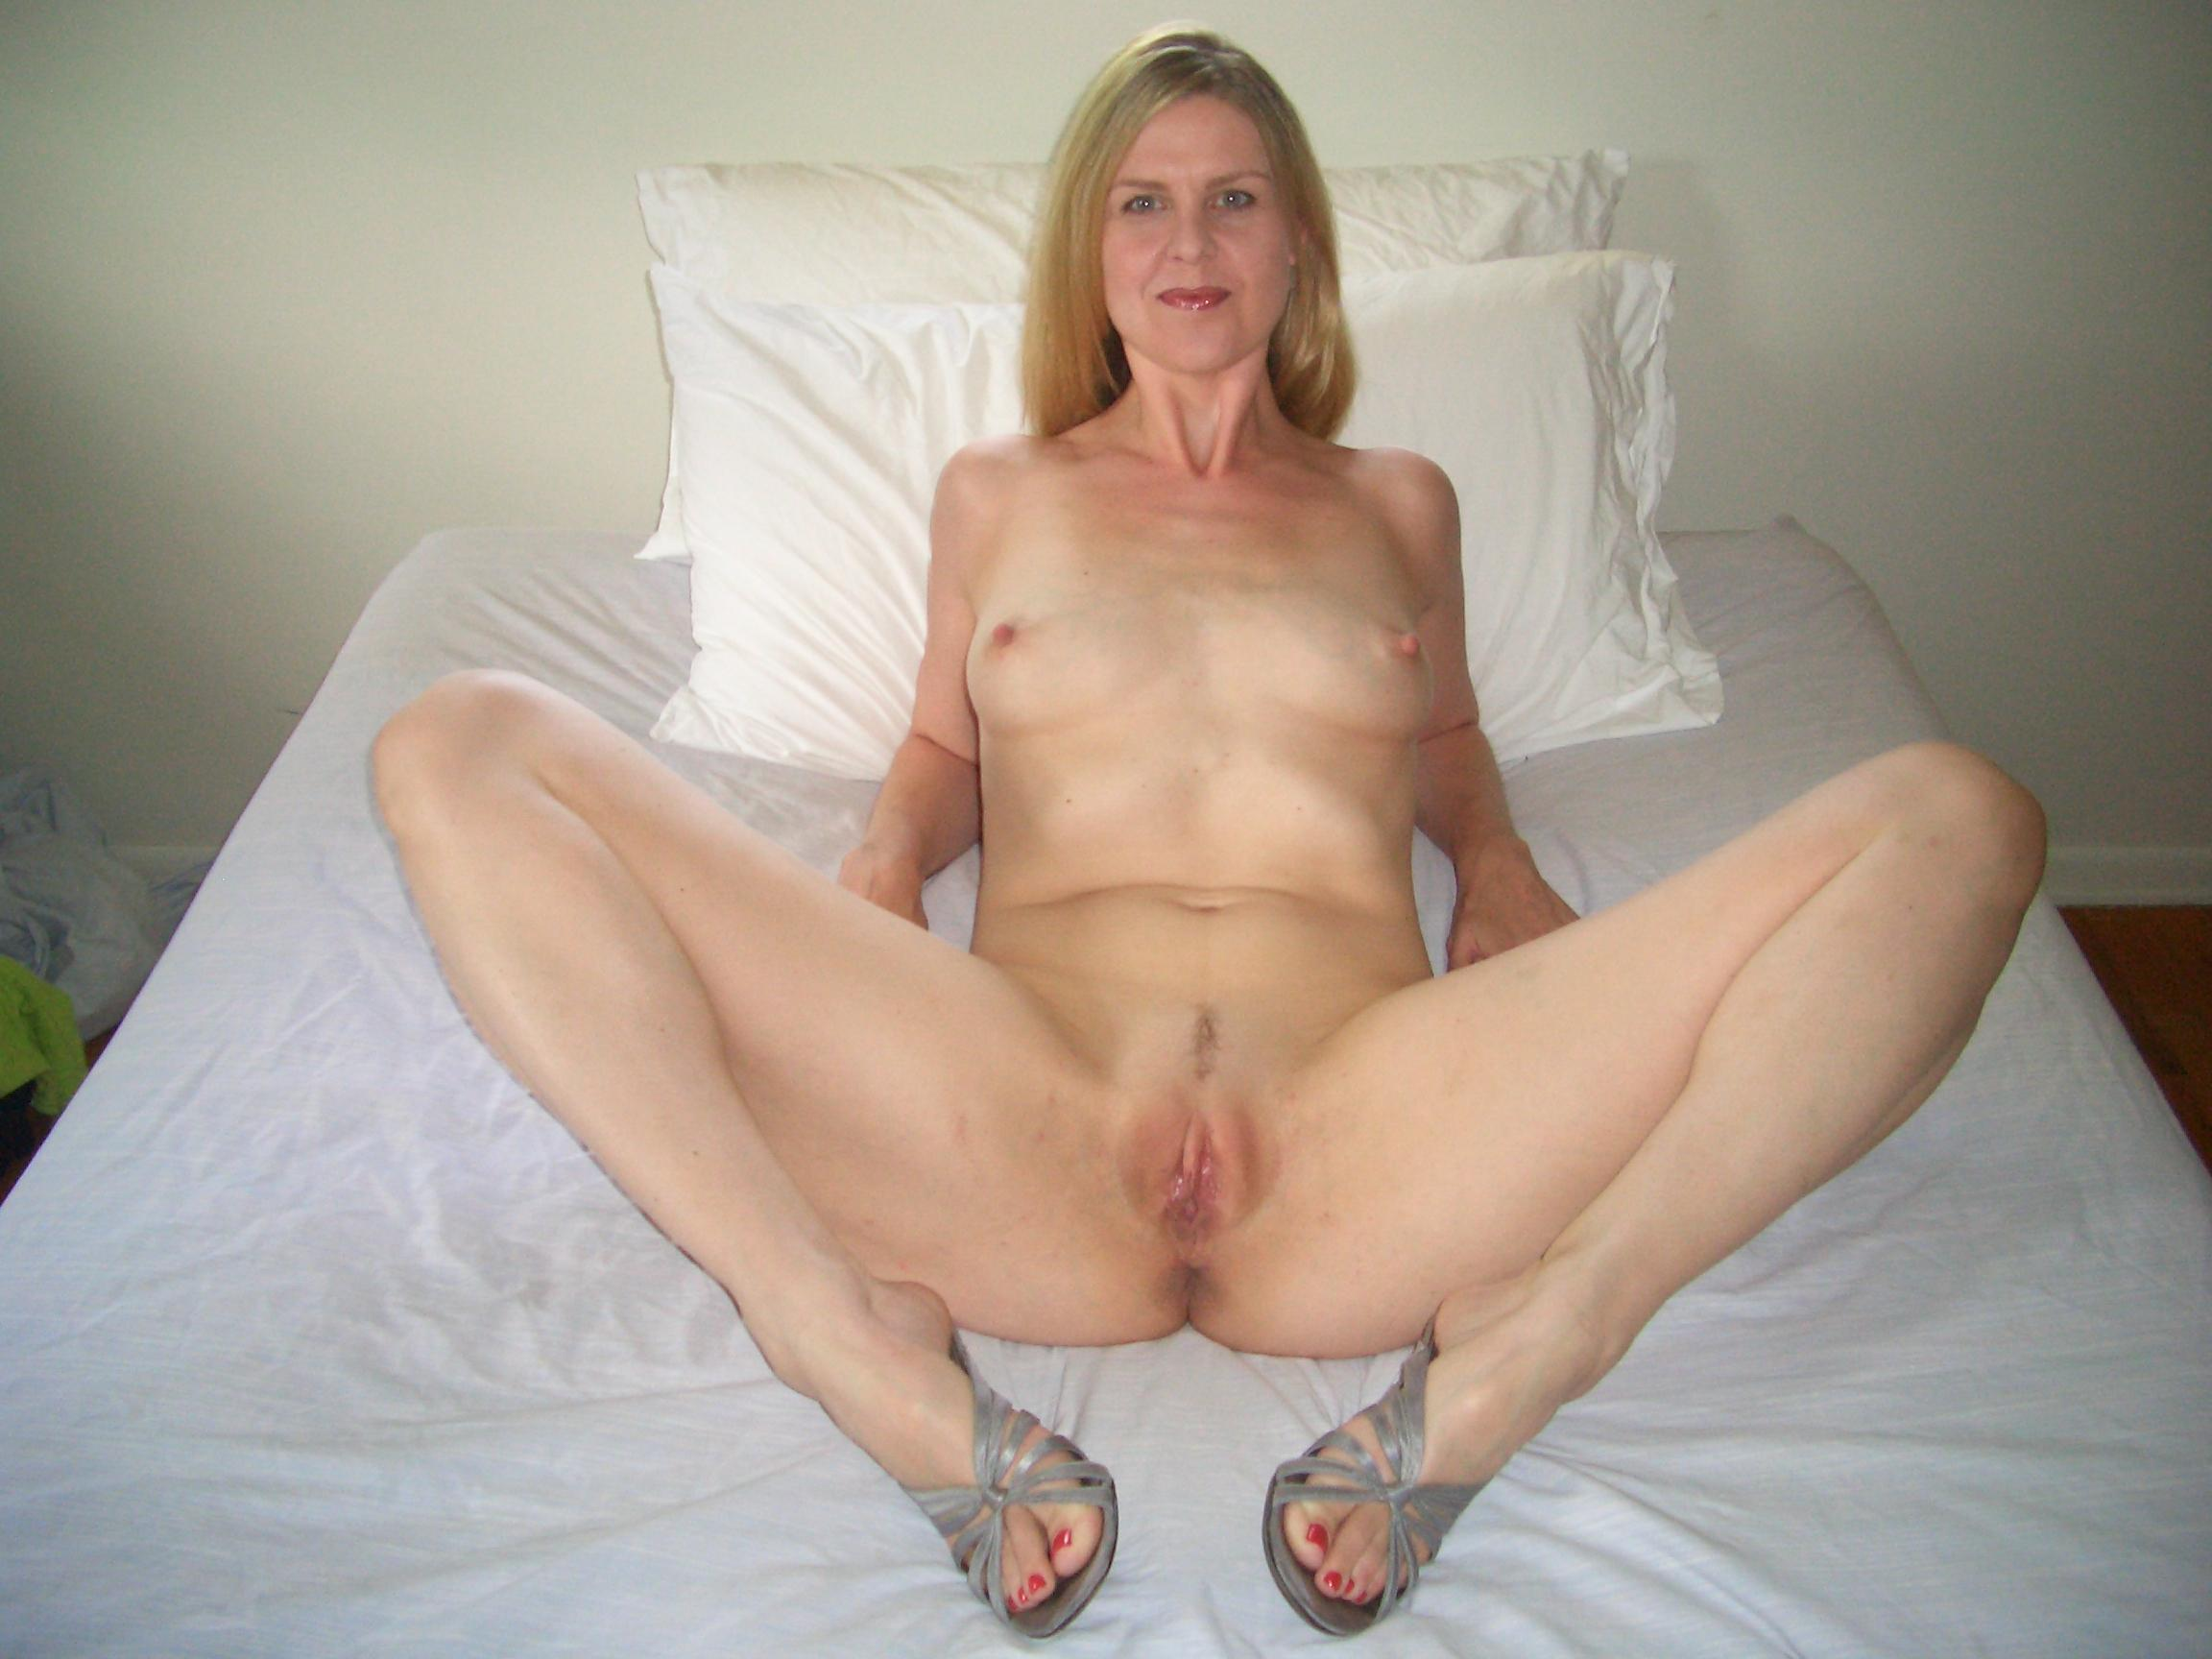 online pussy in pain porno free film pics